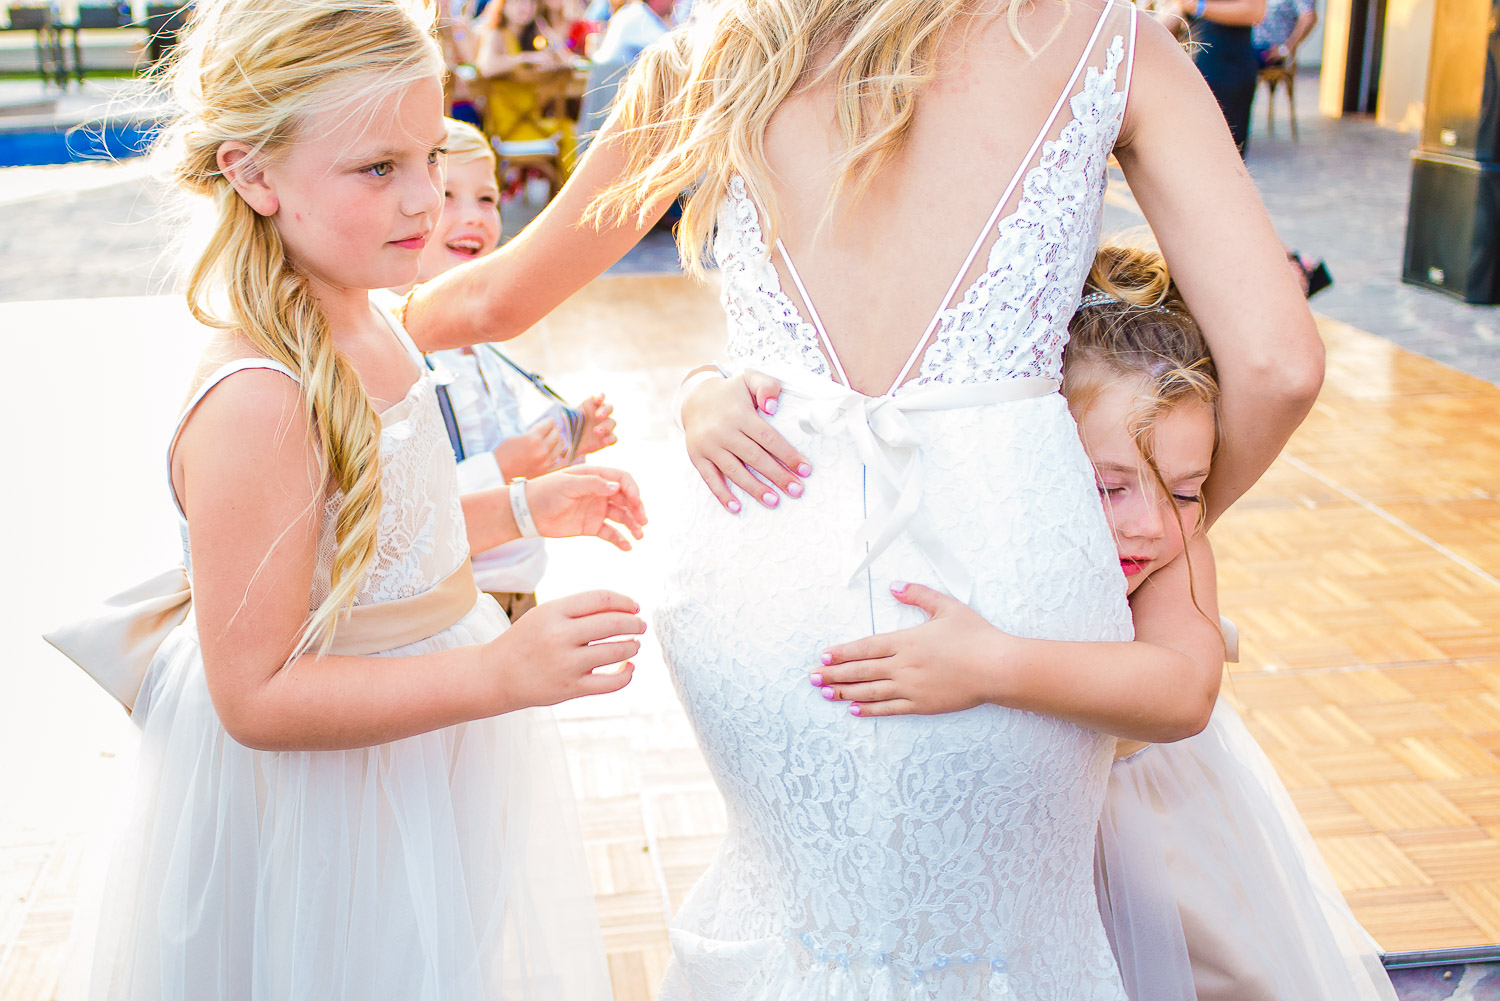 Two lovely kids are hugging the stunning bride dressed in white gown. GVphotographer is an amazing Los Cabos, Mexico destination wedding professional photographer